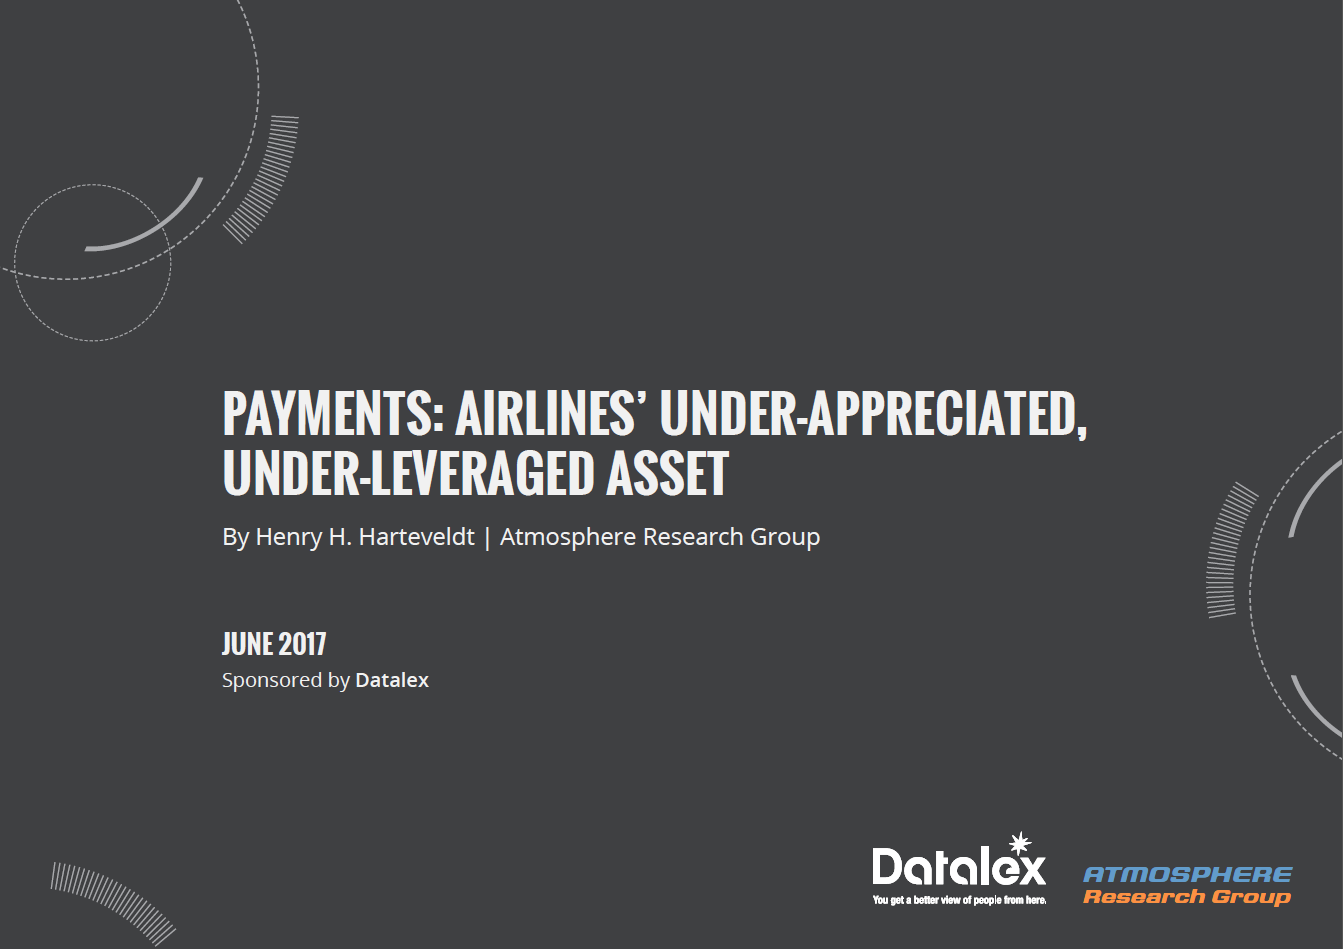 Payments: Airlines' under-appreciated, under-leveraged asset